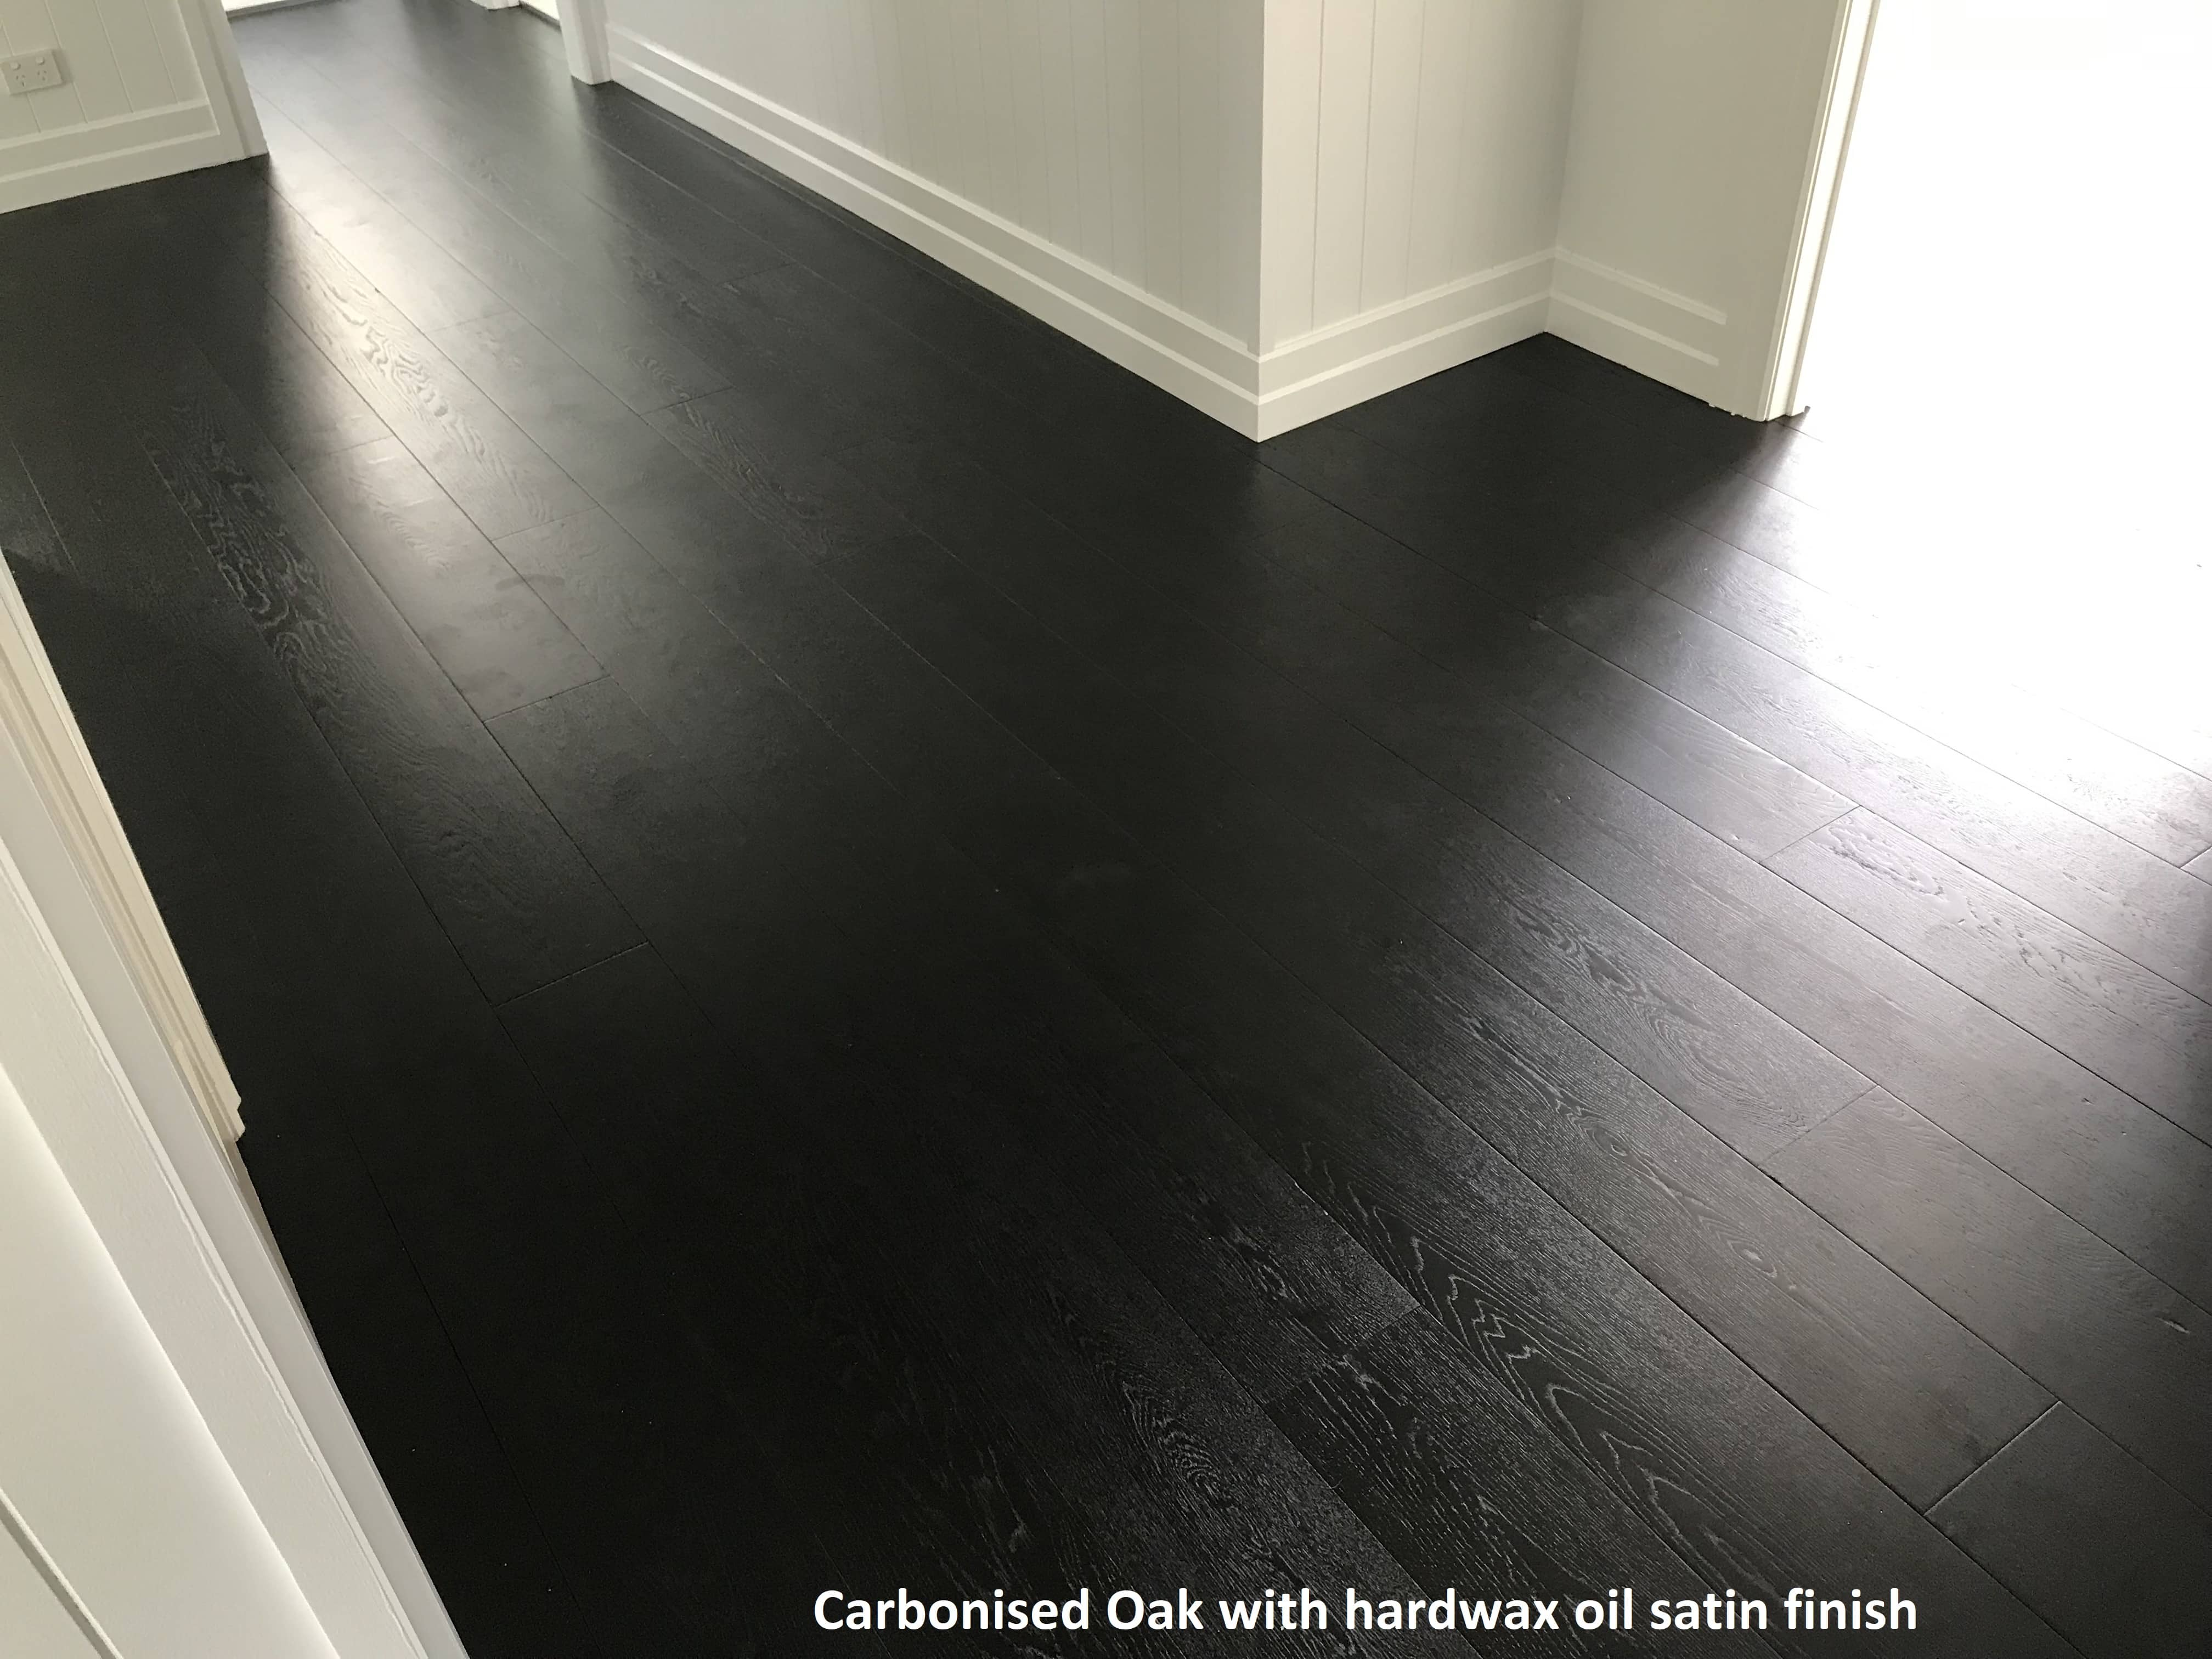 Carbonised Oak Hard wax oil satin finish